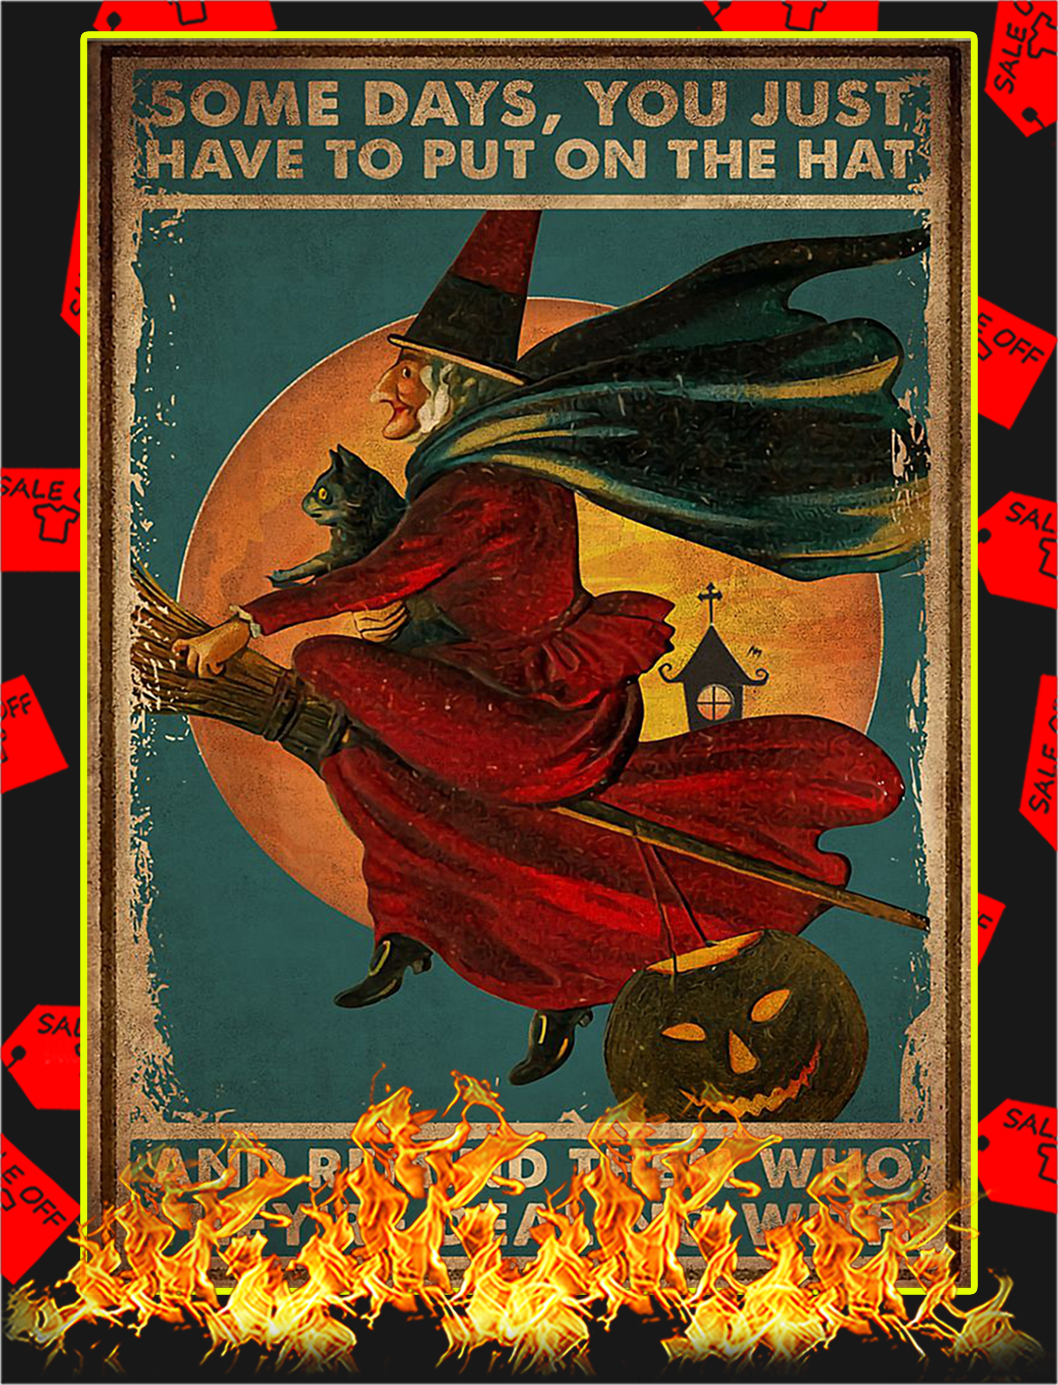 Witch Some days you just have to put on the hat poster - A1